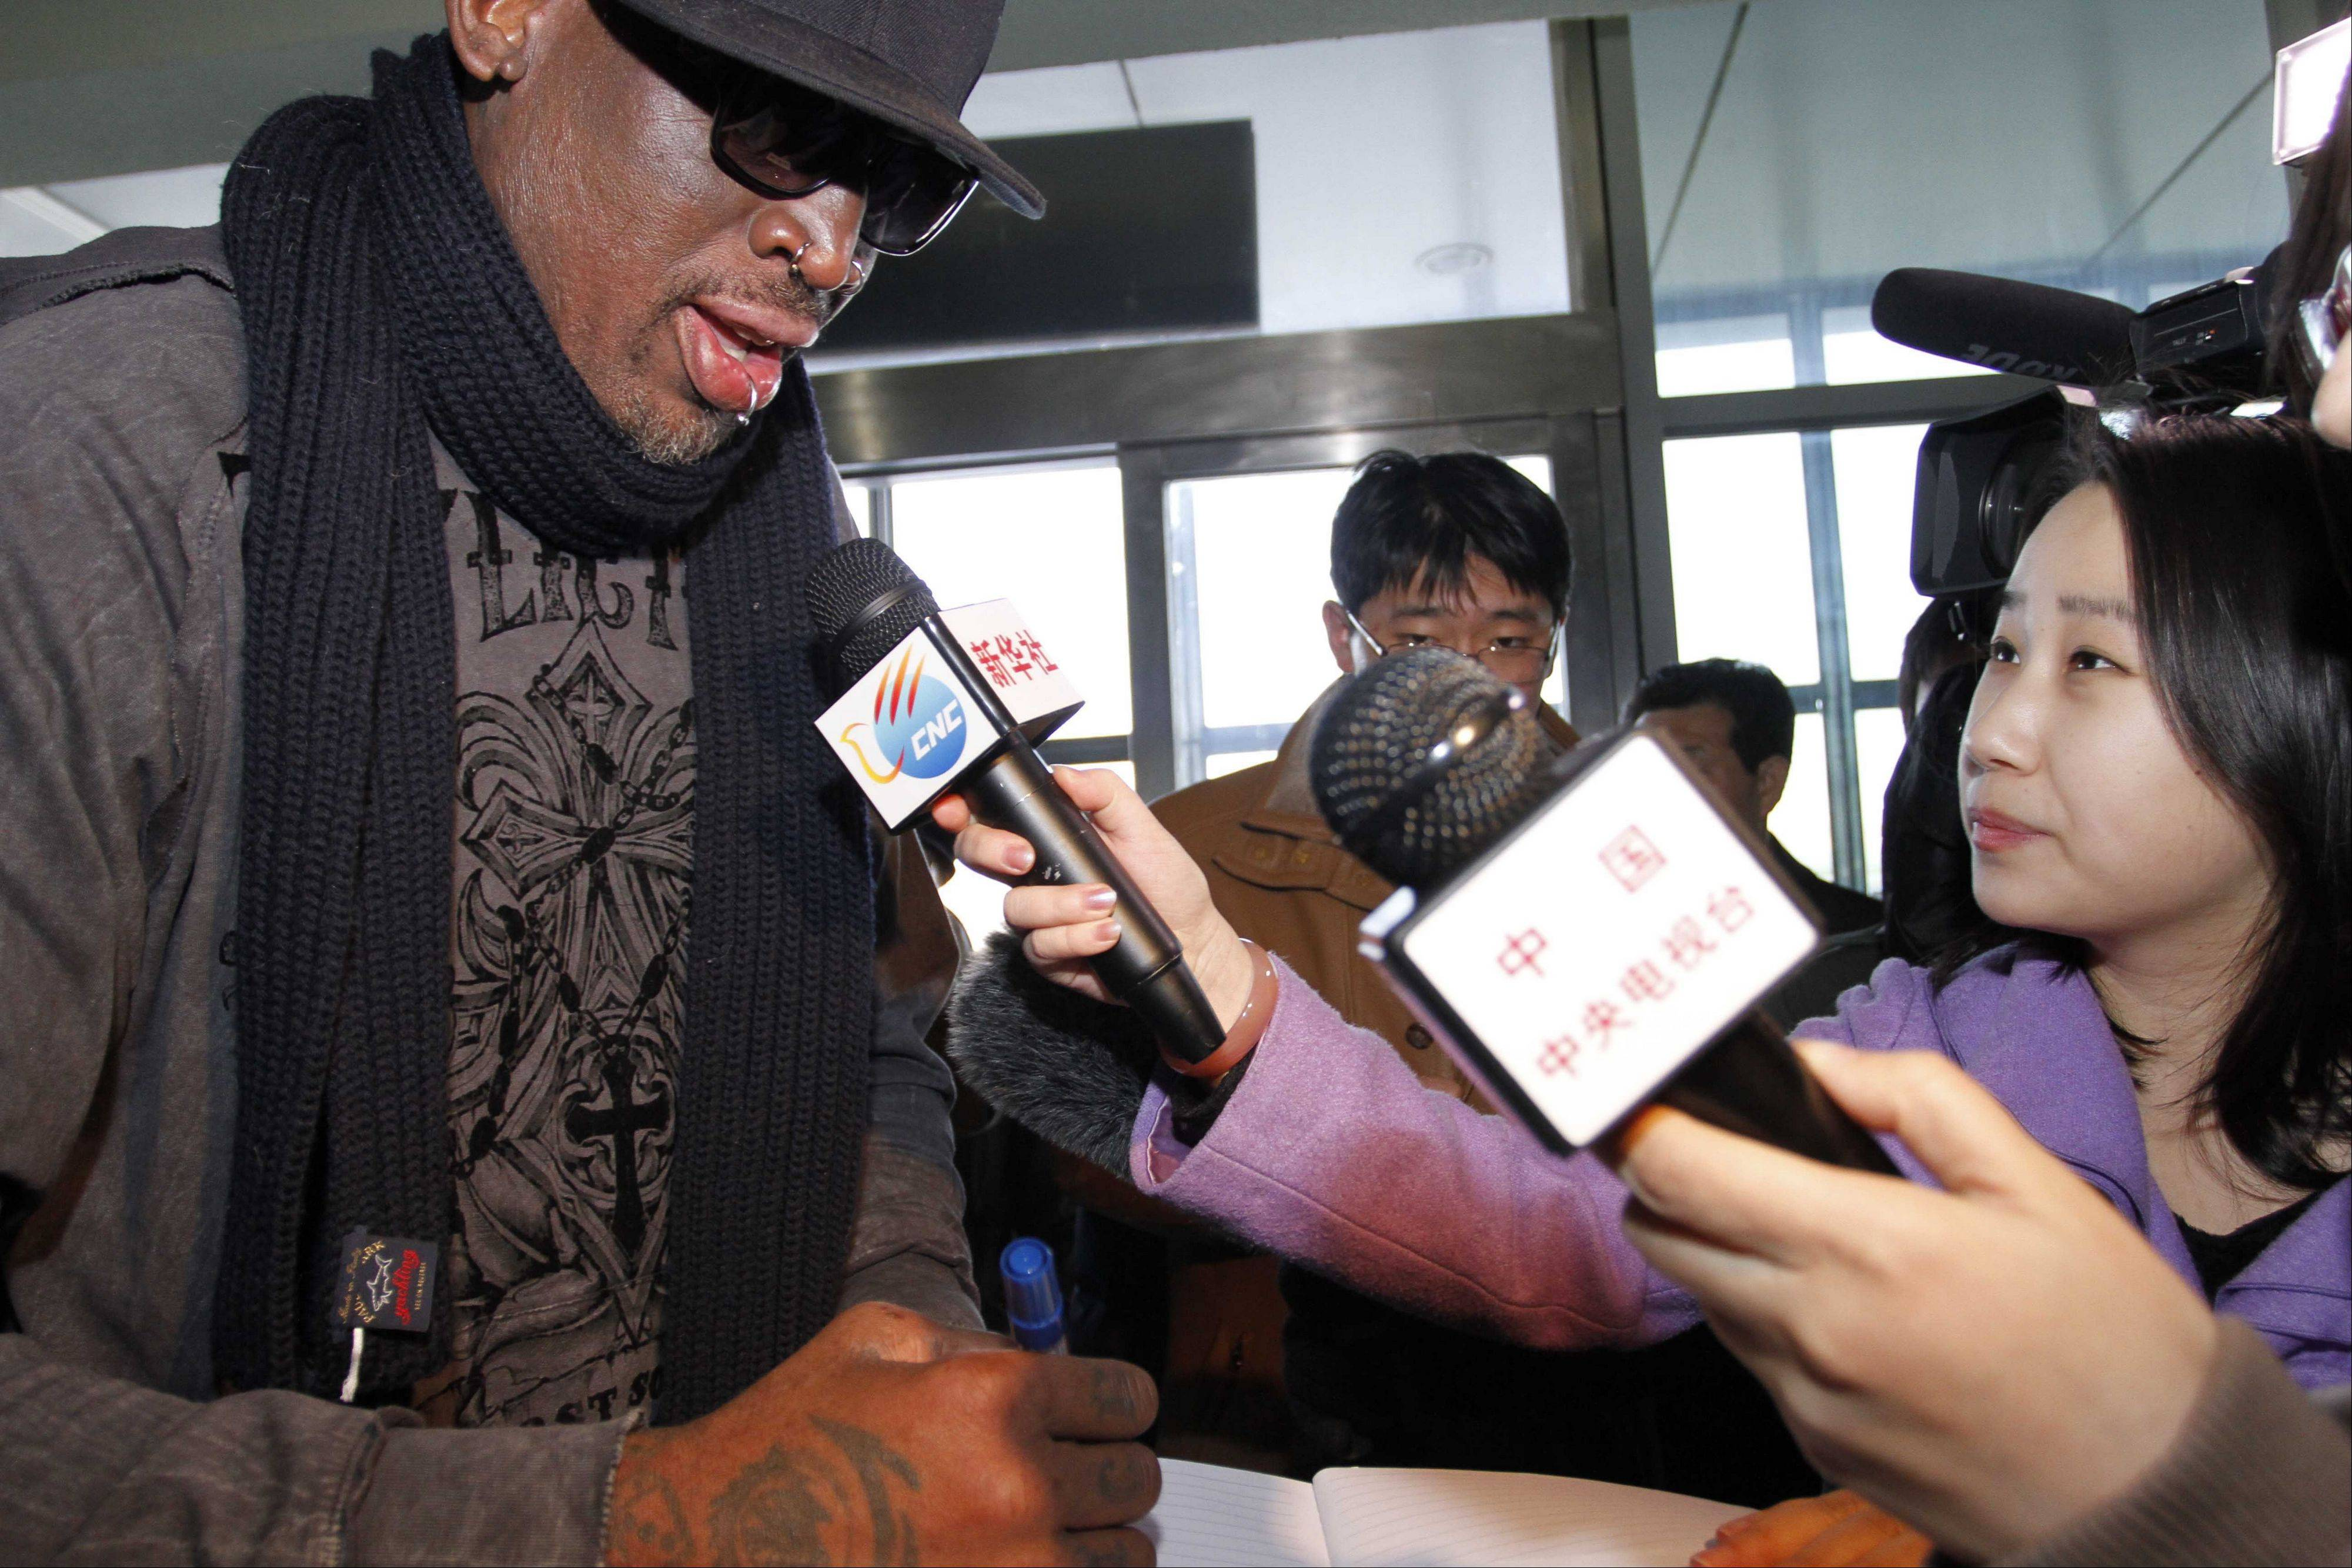 Former NBA star Dennis Rodman speaks to the media Friday at the airport in Pyongyang, before he leaves North Korea. Rodman hung out with North Korea�s Kim Jong Un during his improbable journey to Pyongyang, watching the Harlem Globetrotters with the leader and later drinking and dining on sushi with him.